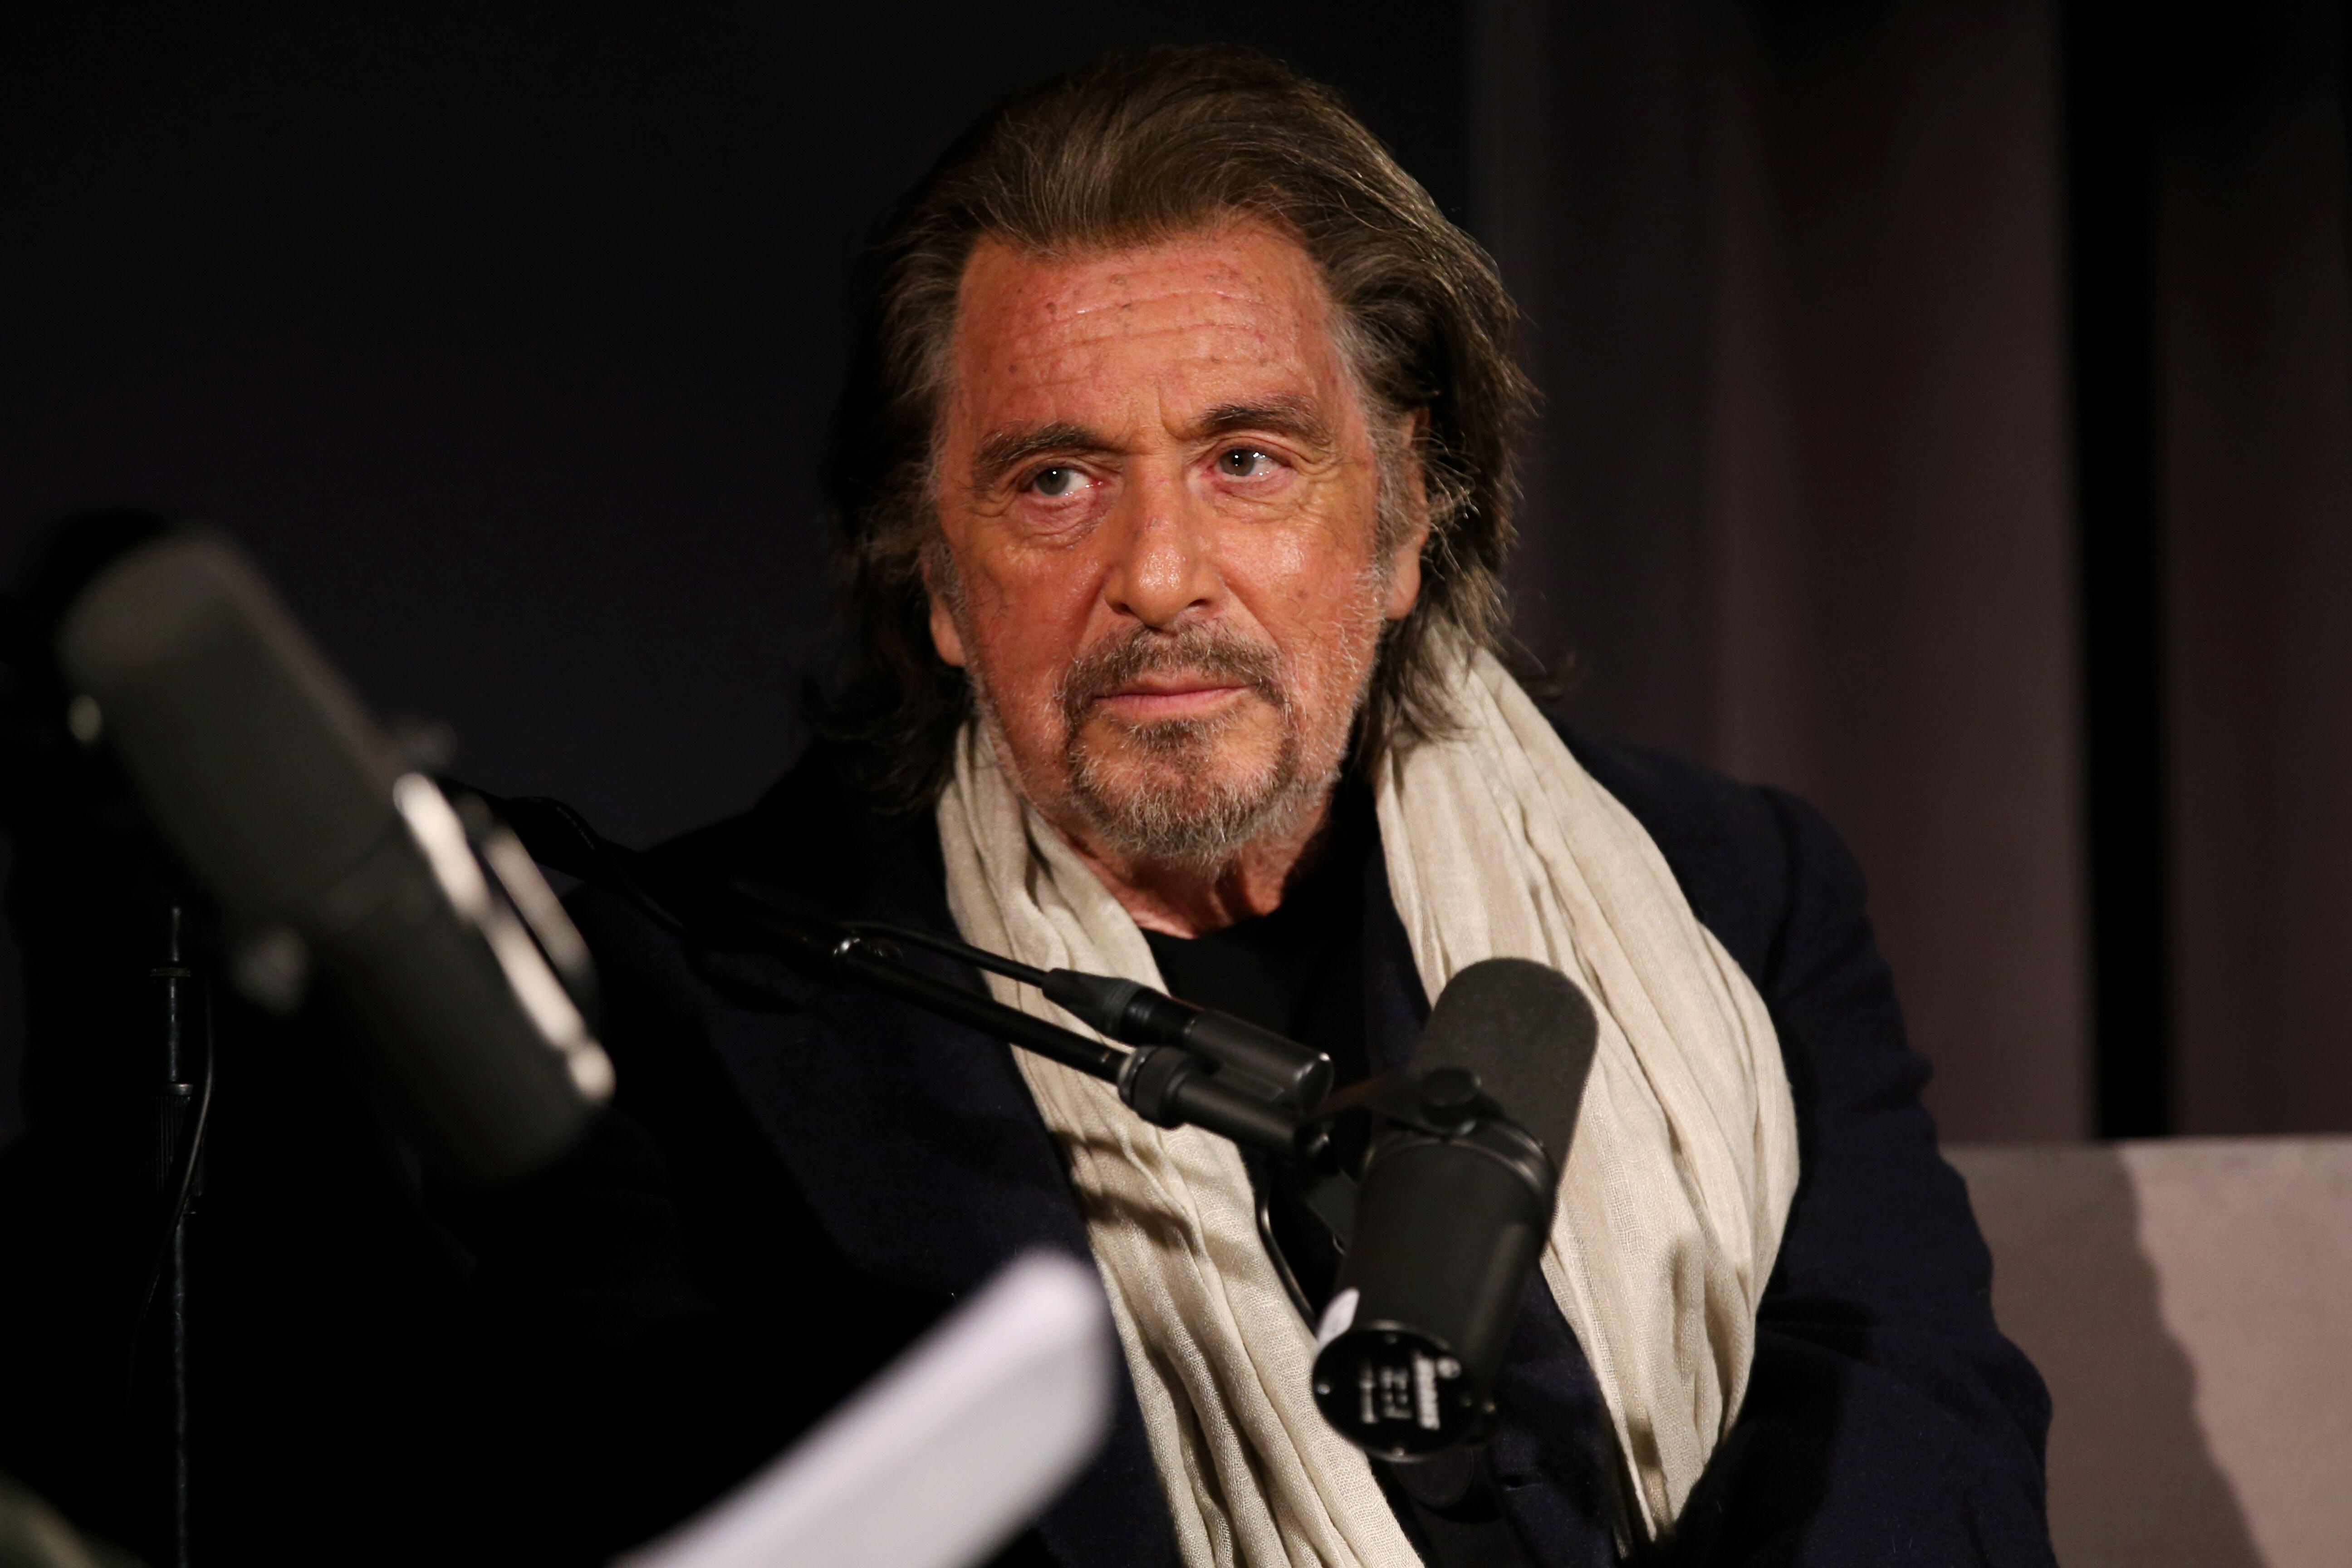 Al Pacino speaks onstage during The Hollywood Reporter Awards Chatter Live. | Source: Getty Images